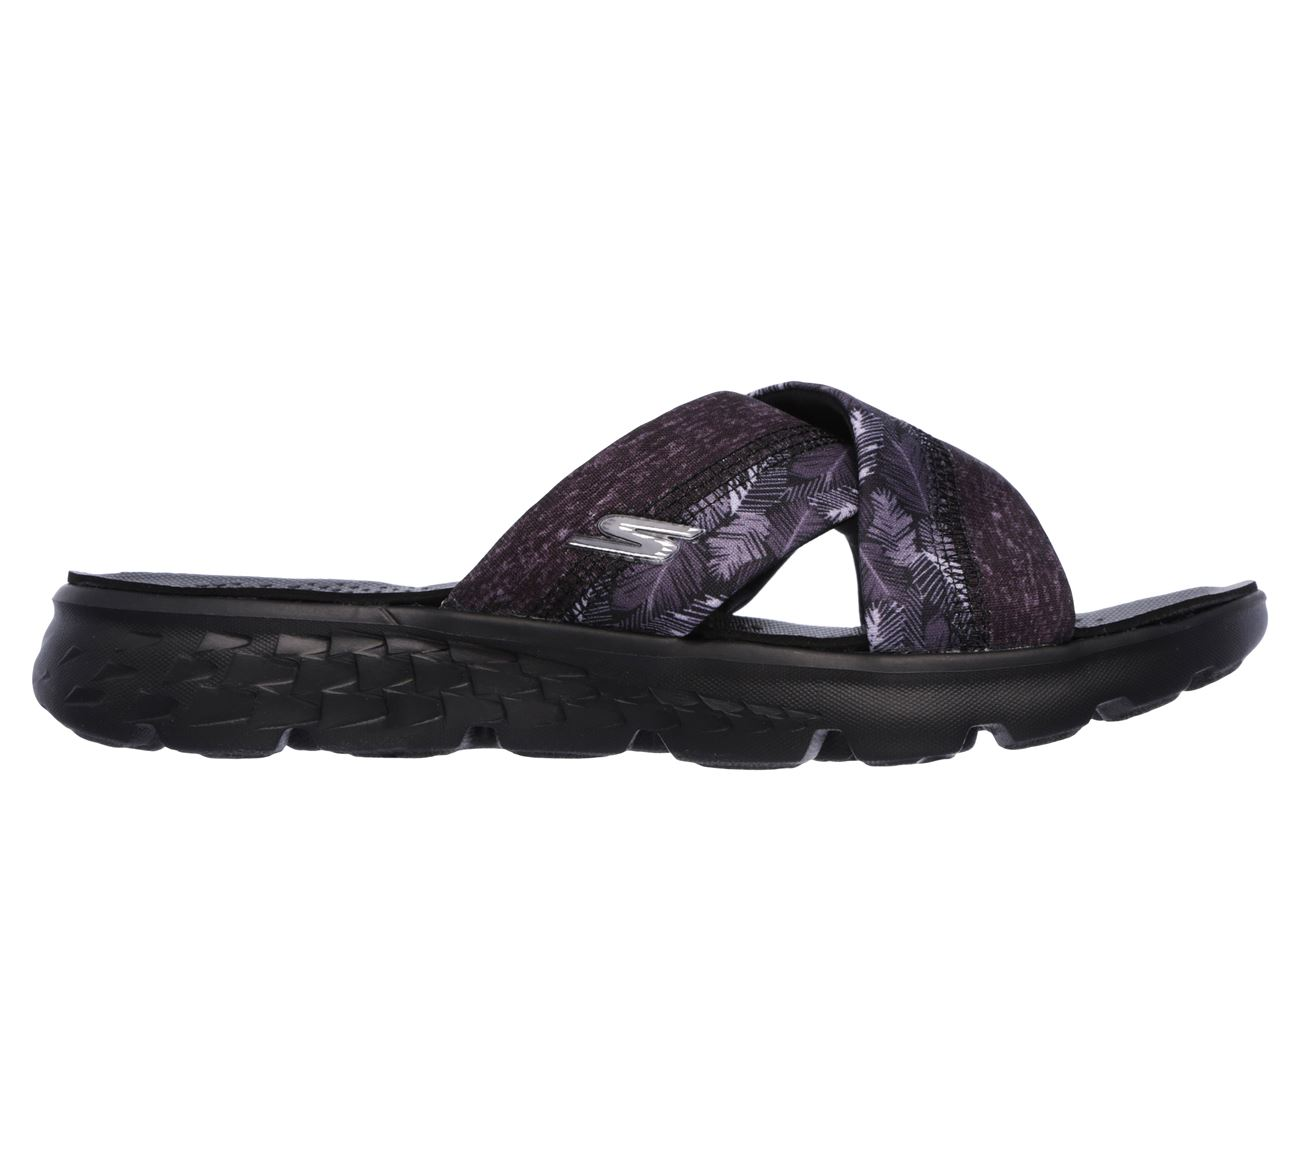 Flex Flip Discounted Skechers Off69 Buy Flops Go gt; RwEWqx